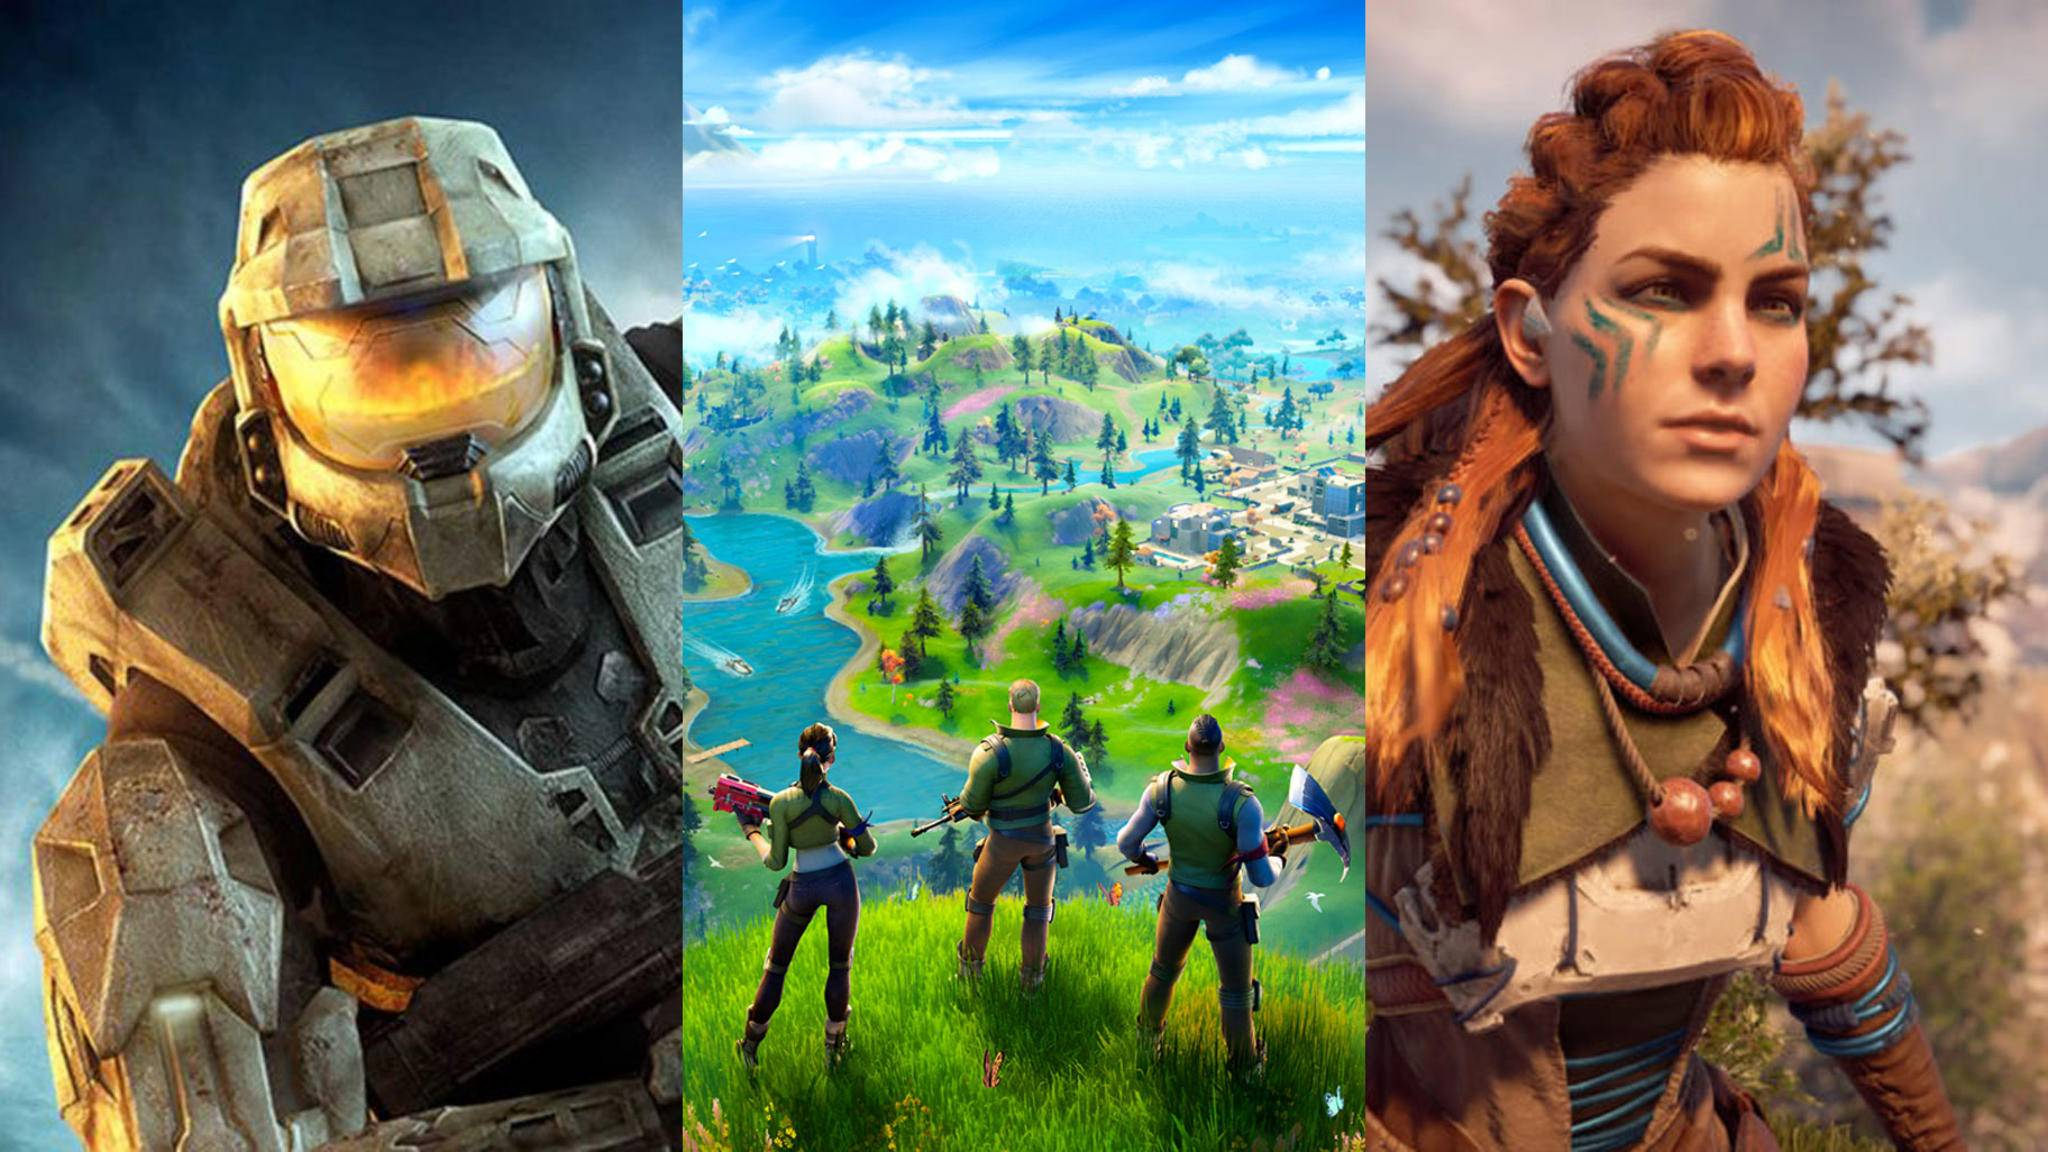 halo-fortnite-horizon-zero-dawn-collage